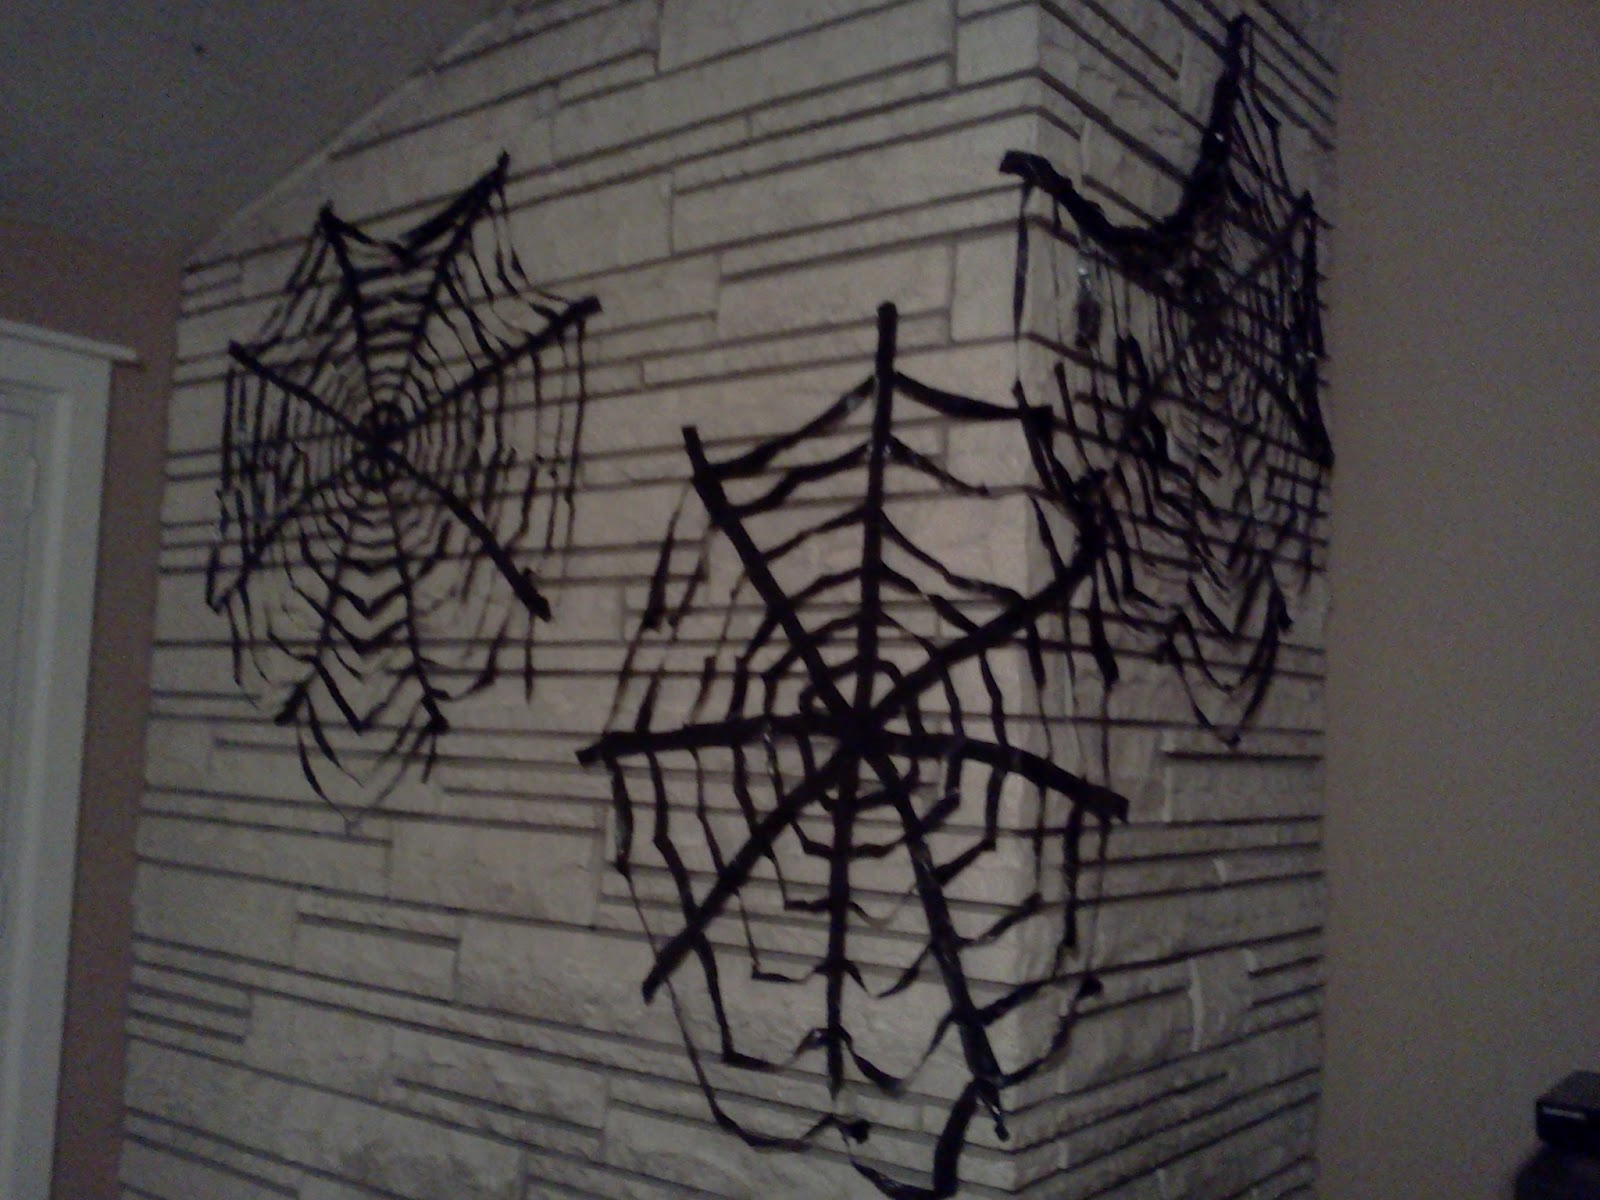 how to make spider webs in real life